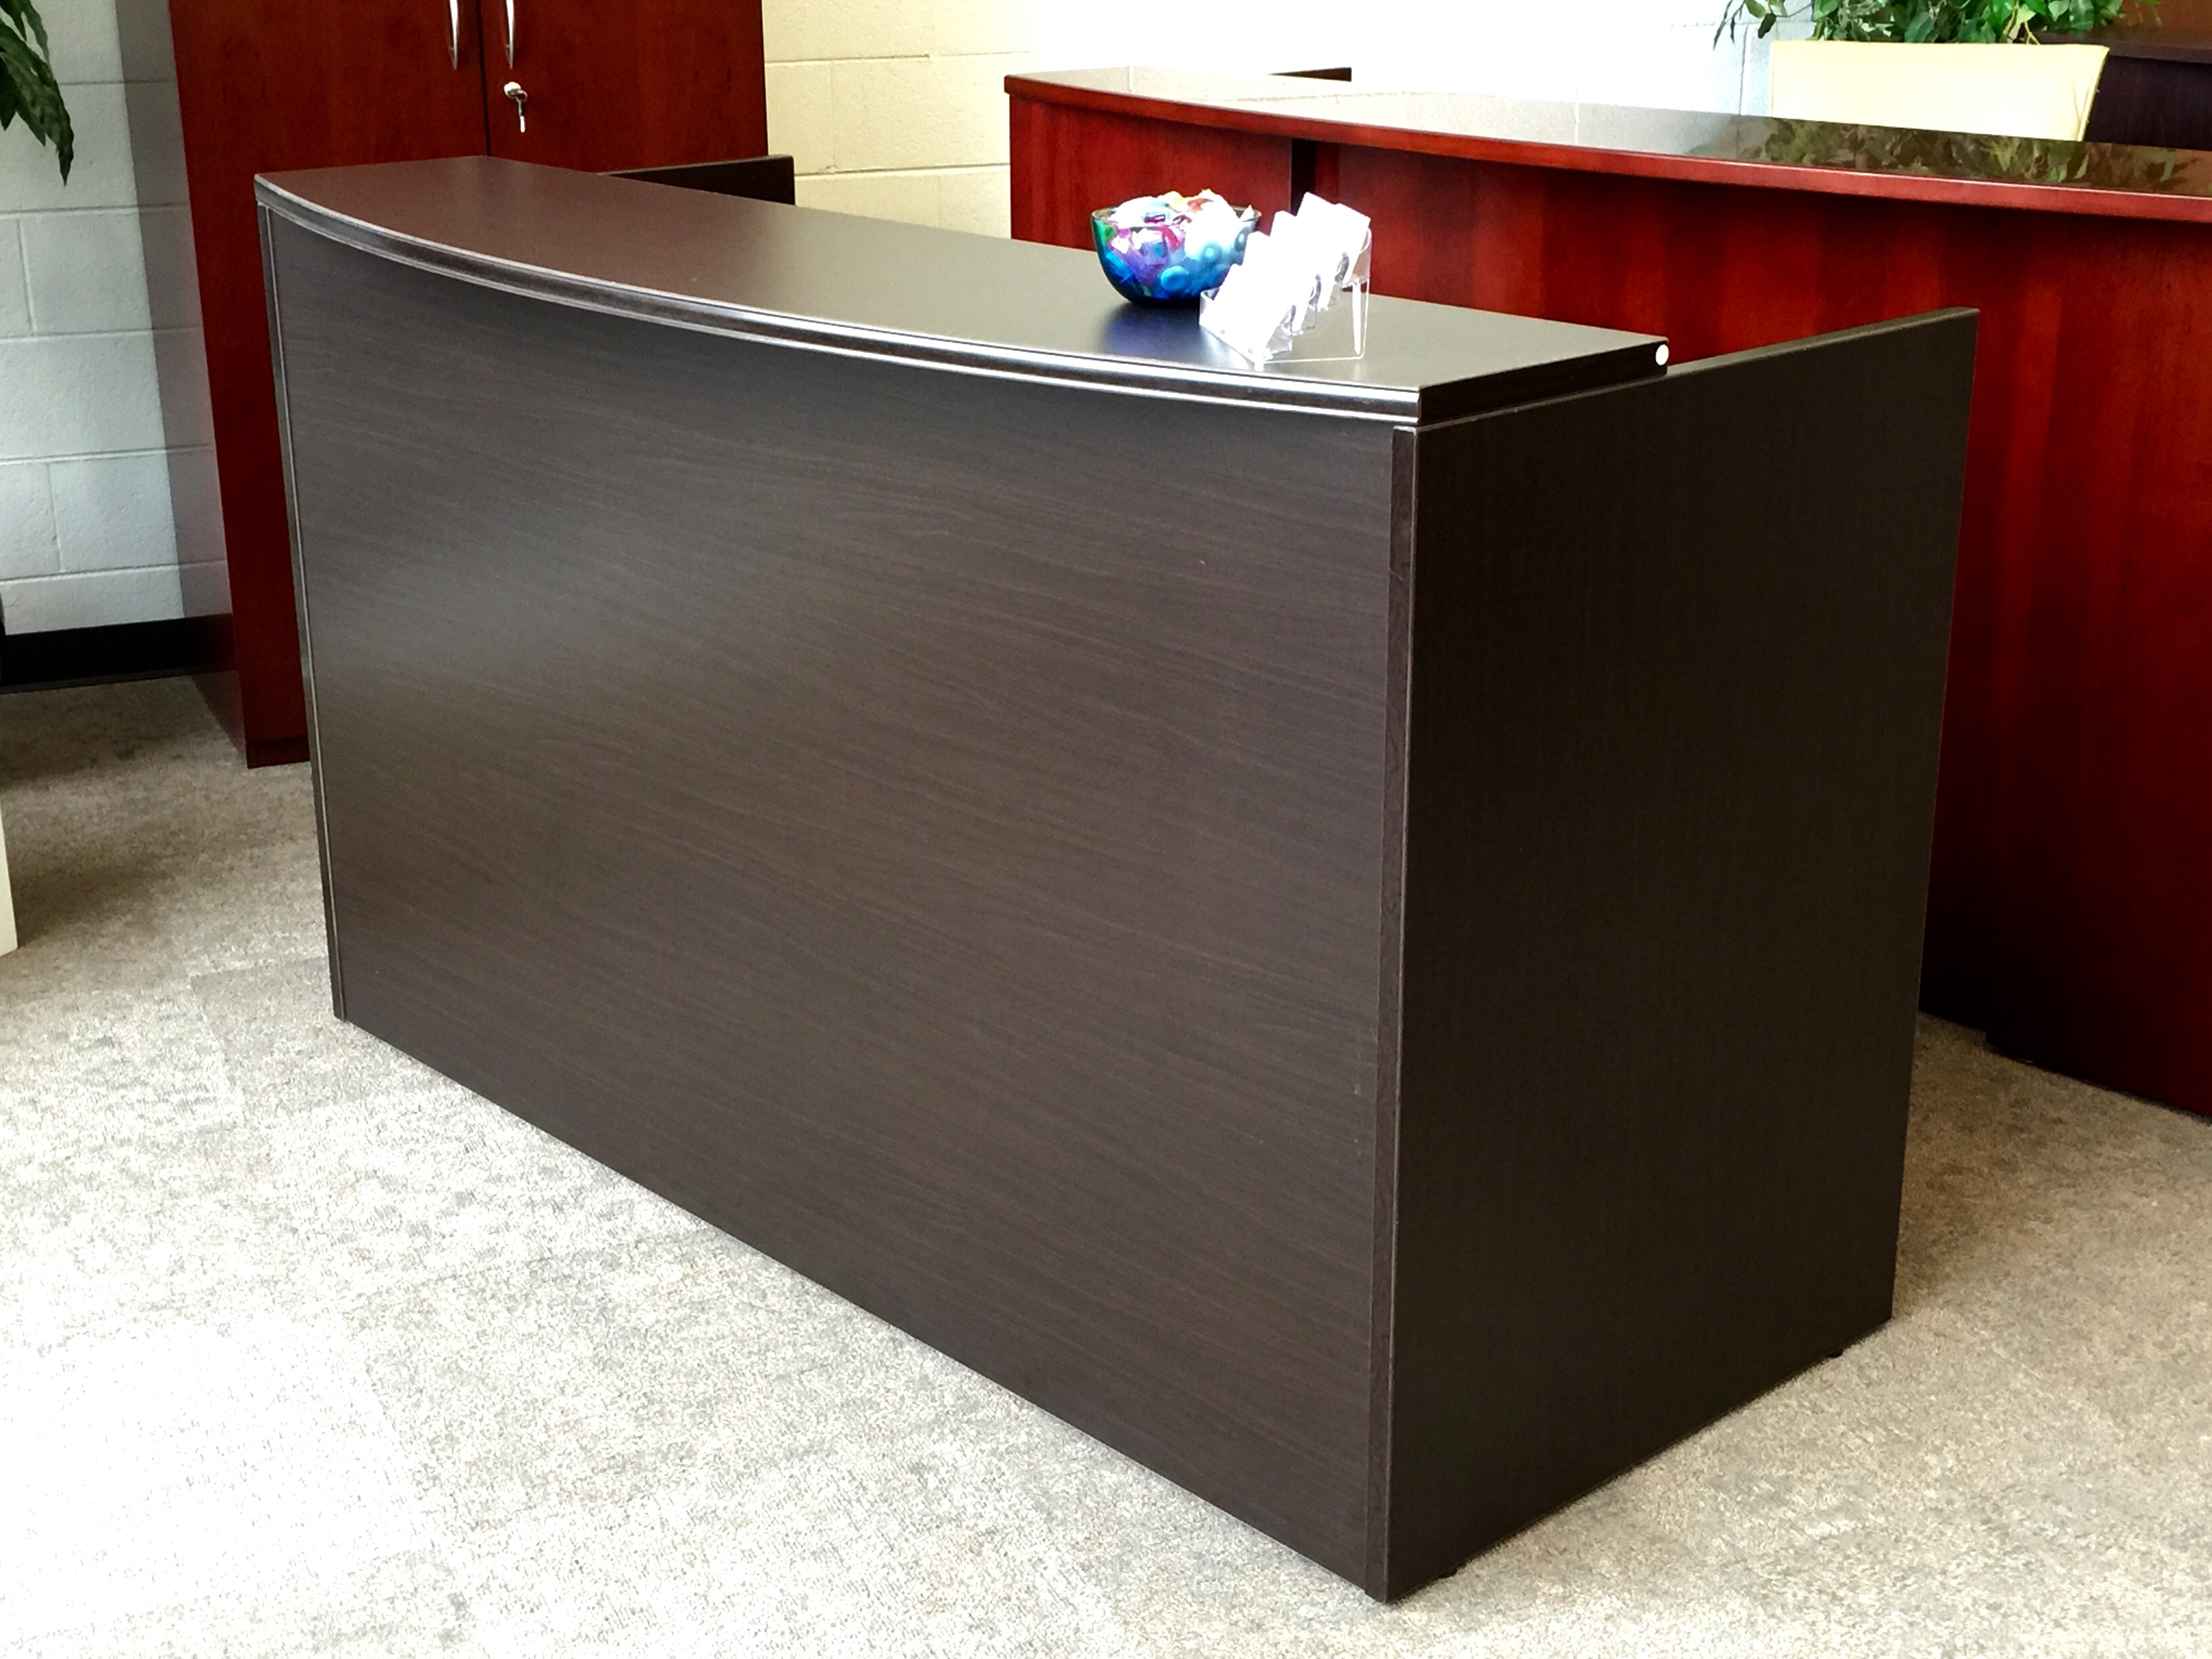 Crescendo Reception Desk Shell OFW Office Furniture Warehouse - Office furniture warehouse